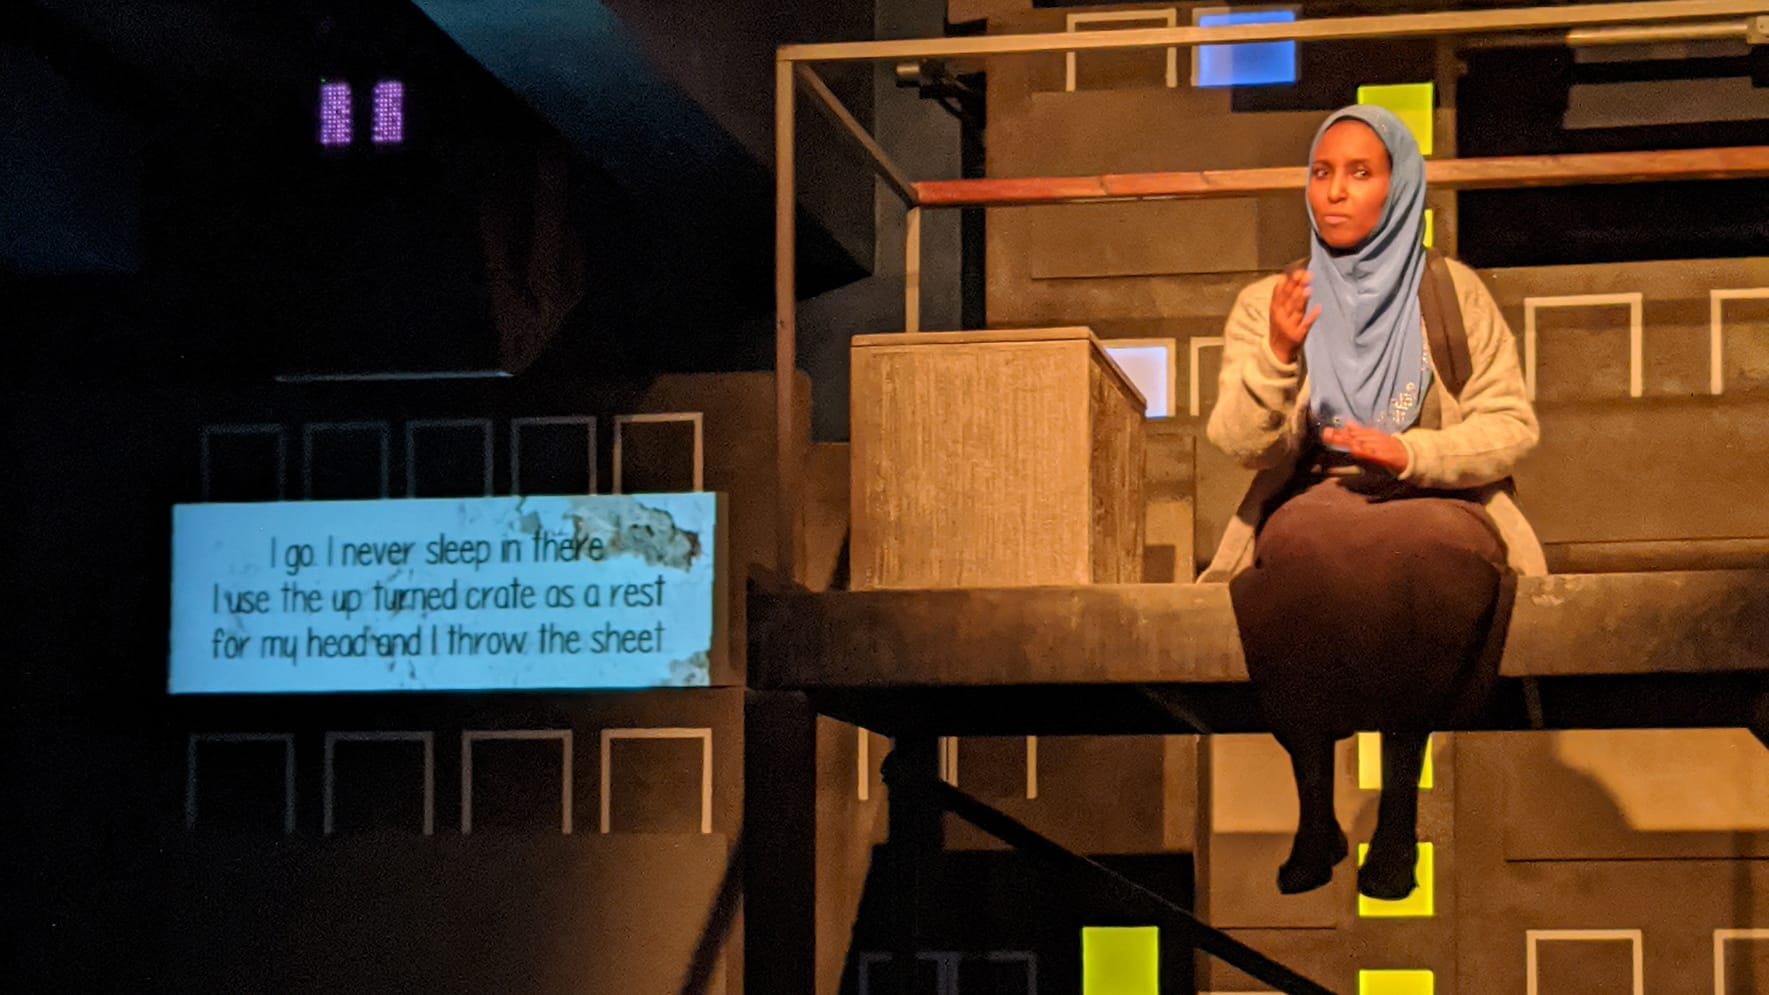 A girl sitting on a stage with captions to her left designed to look like a bus stop